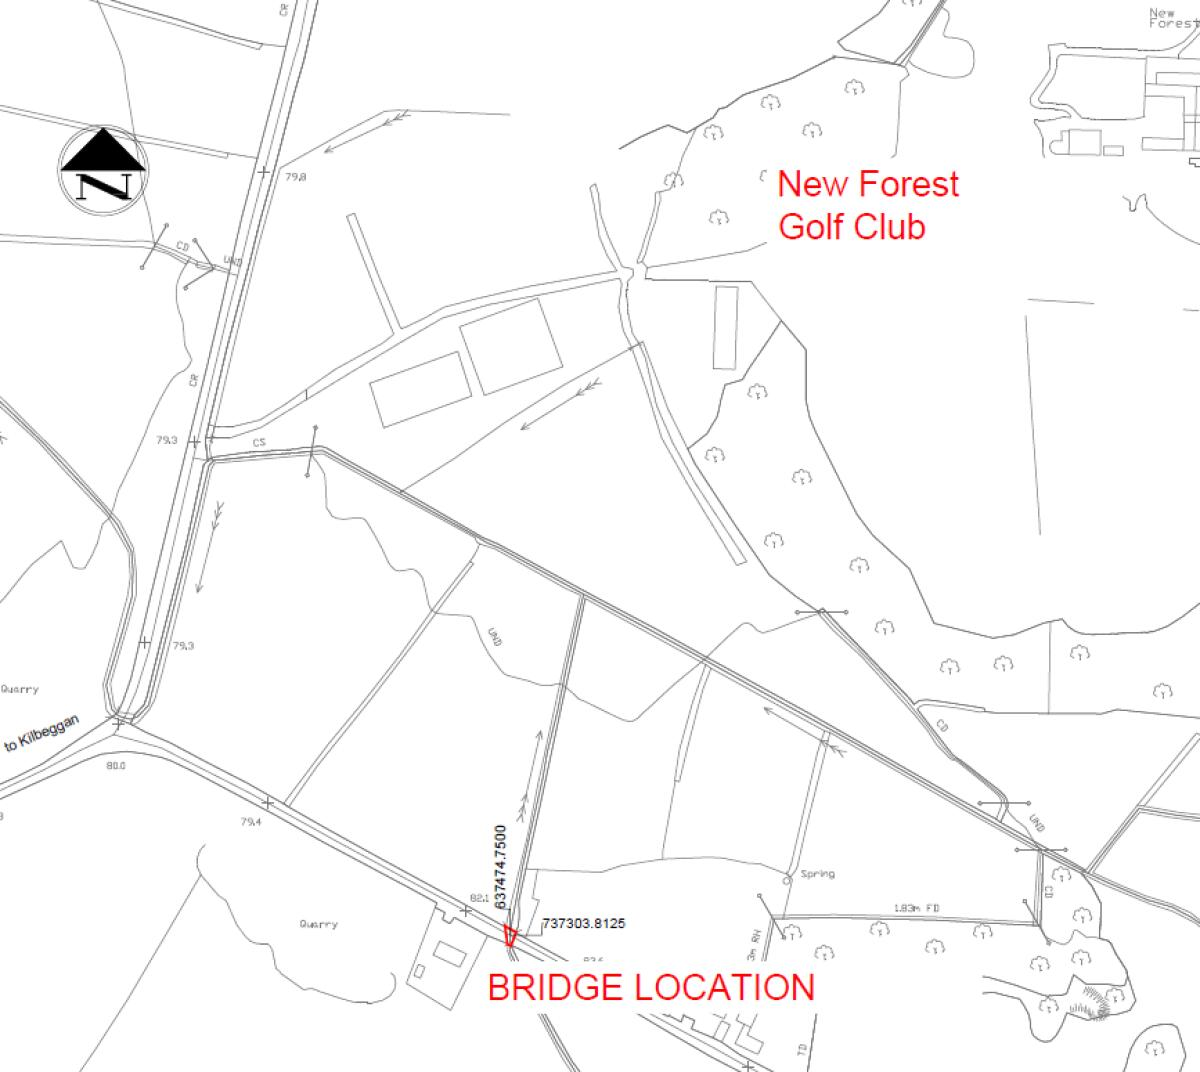 UPDATE: MAP SHOWING LOCATION OF FAILED BRIDGE NEAR